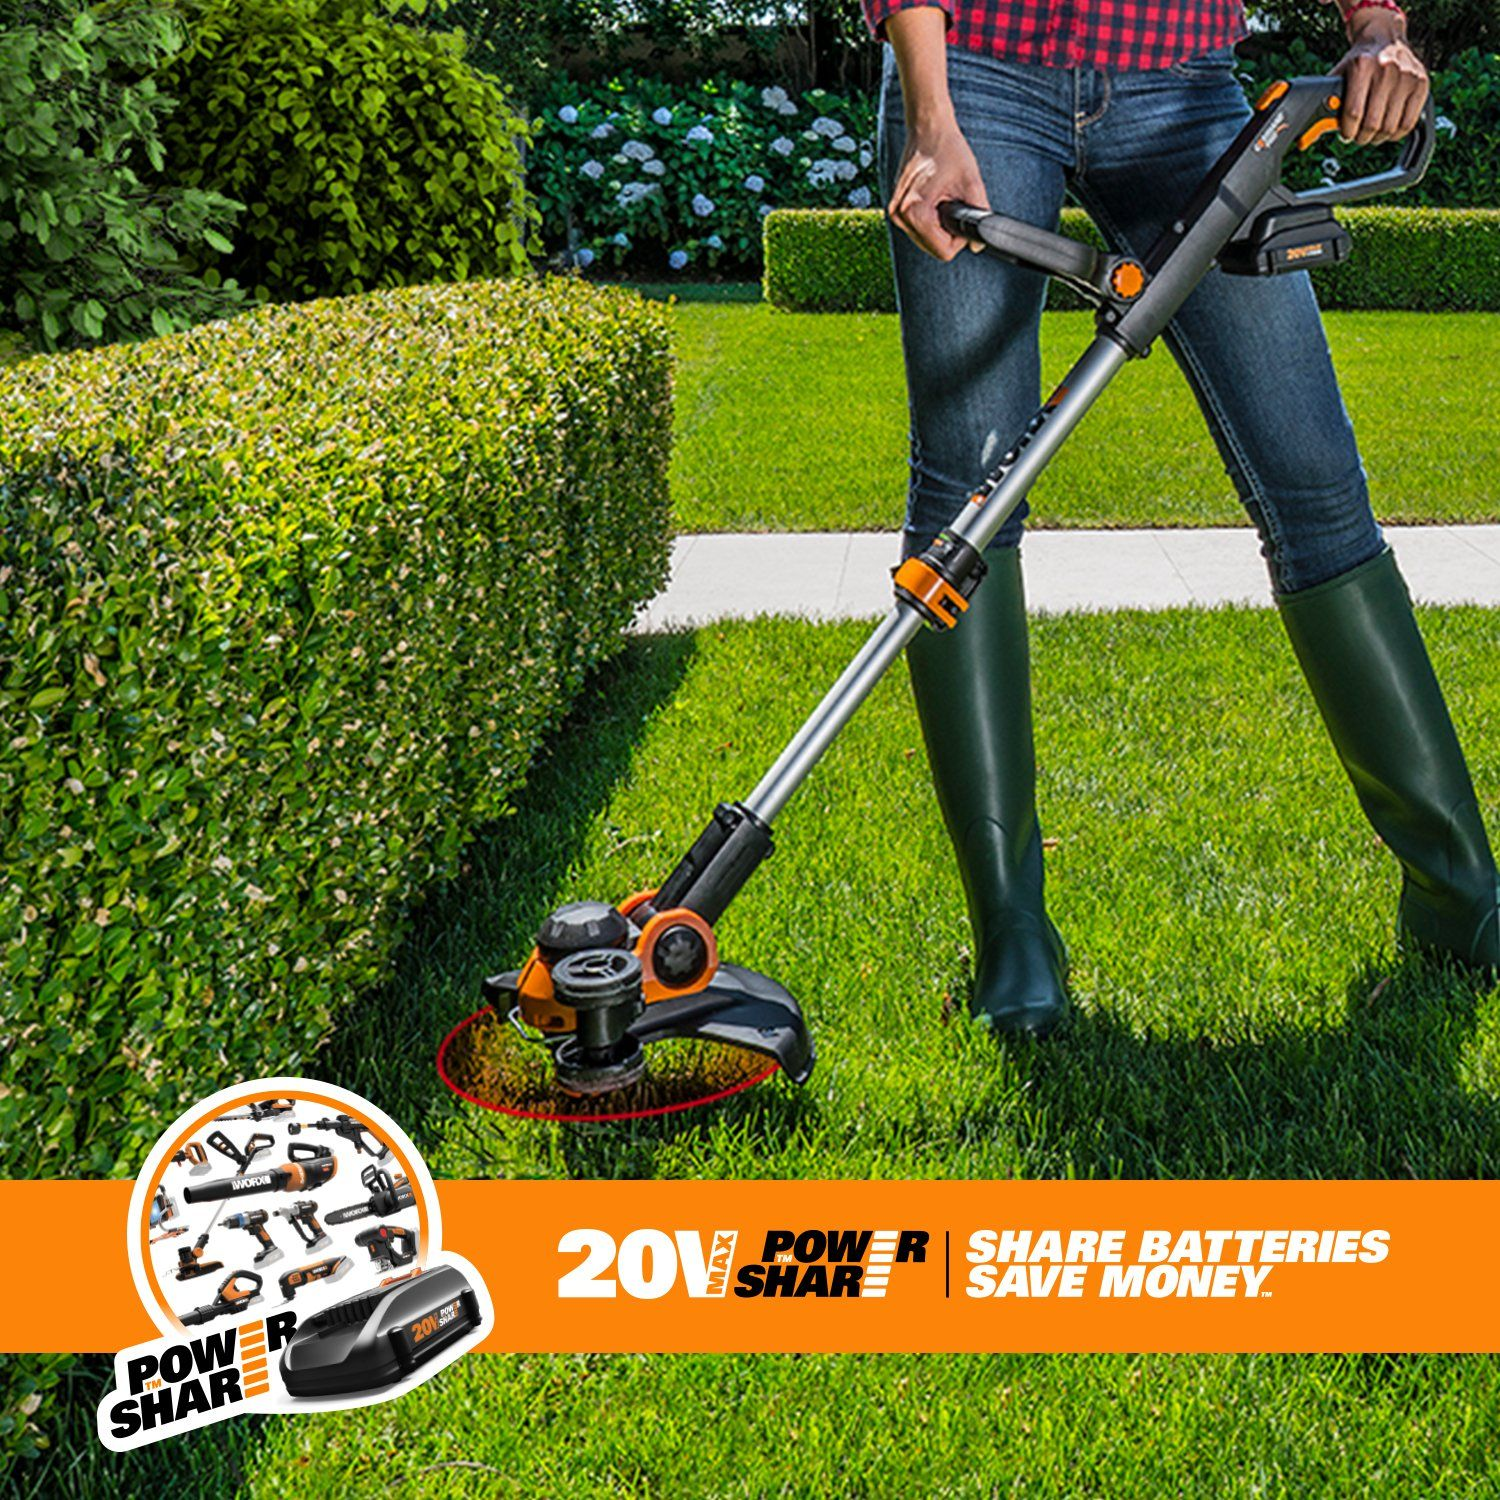 Worx Wg163 Gt 3 0 20v Cordless Grass Trimmer Edger With Command Feed 12 2 Batteries And Charger Included Click On Trimmers Landscaping Tools Ergonomic Tools